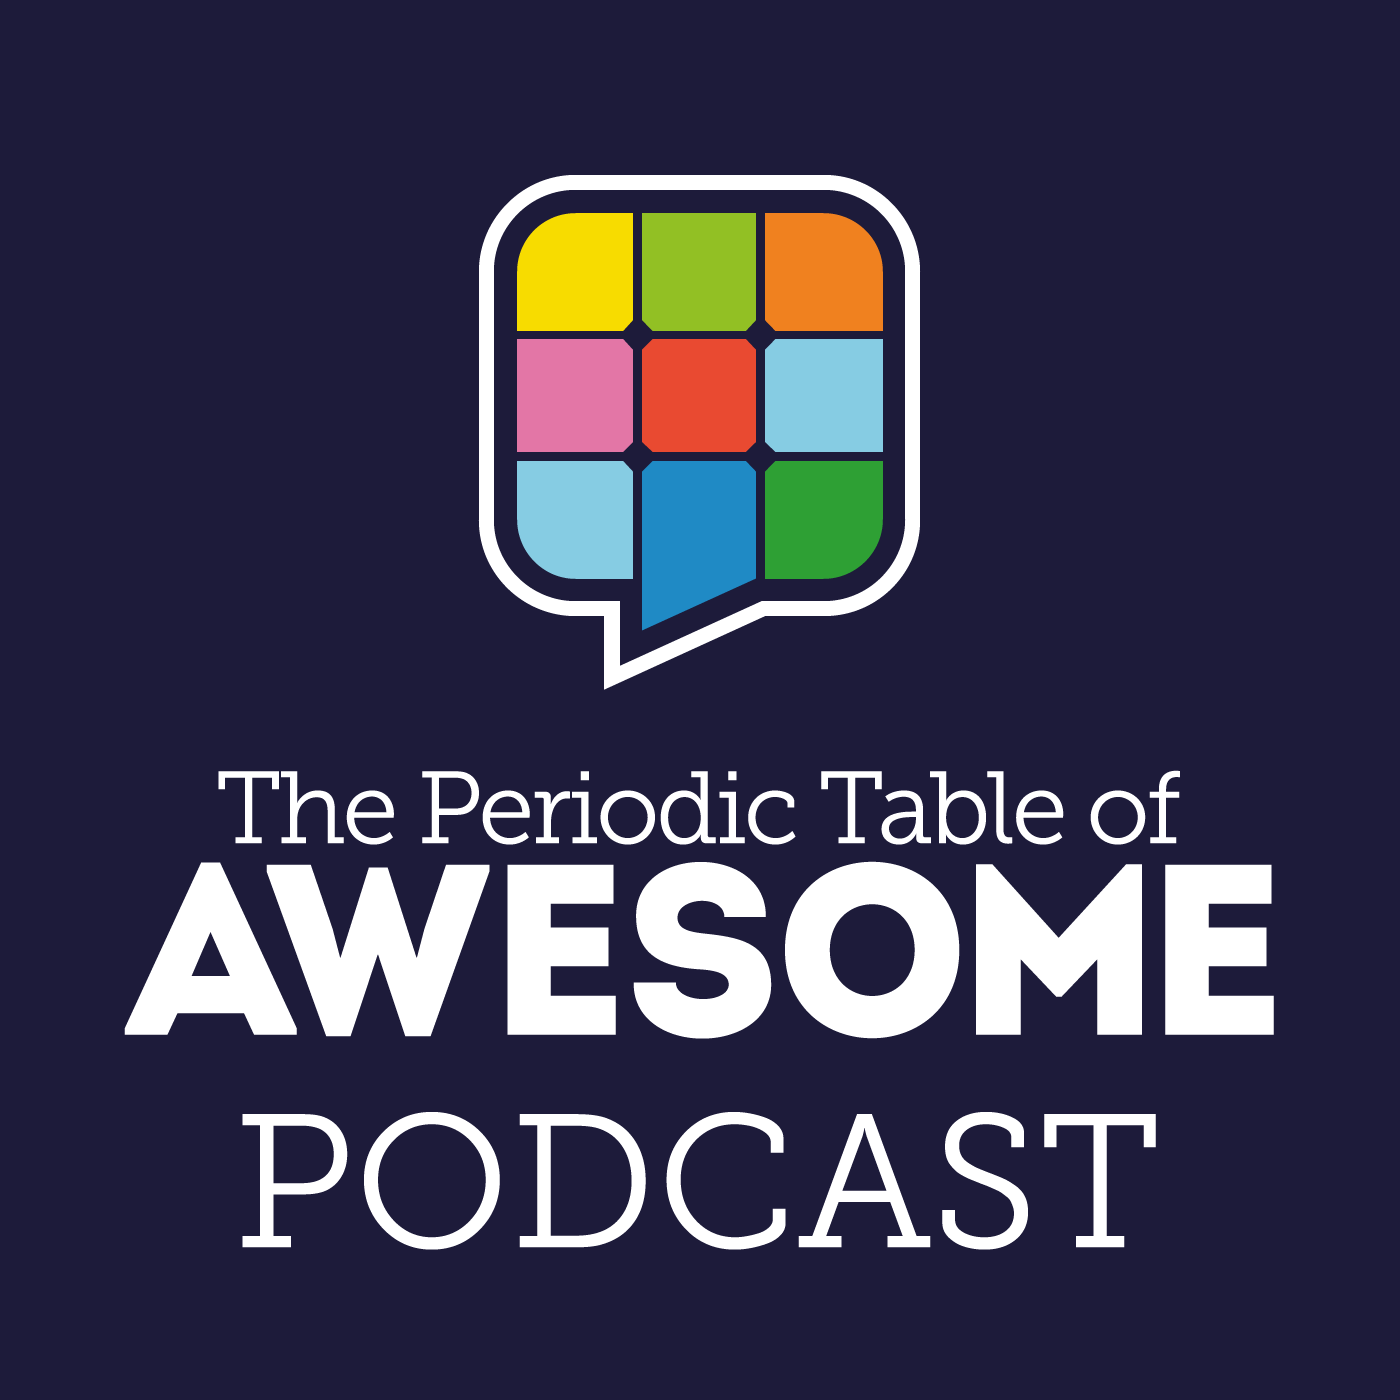 The Periodic Table of Awesome Podcast